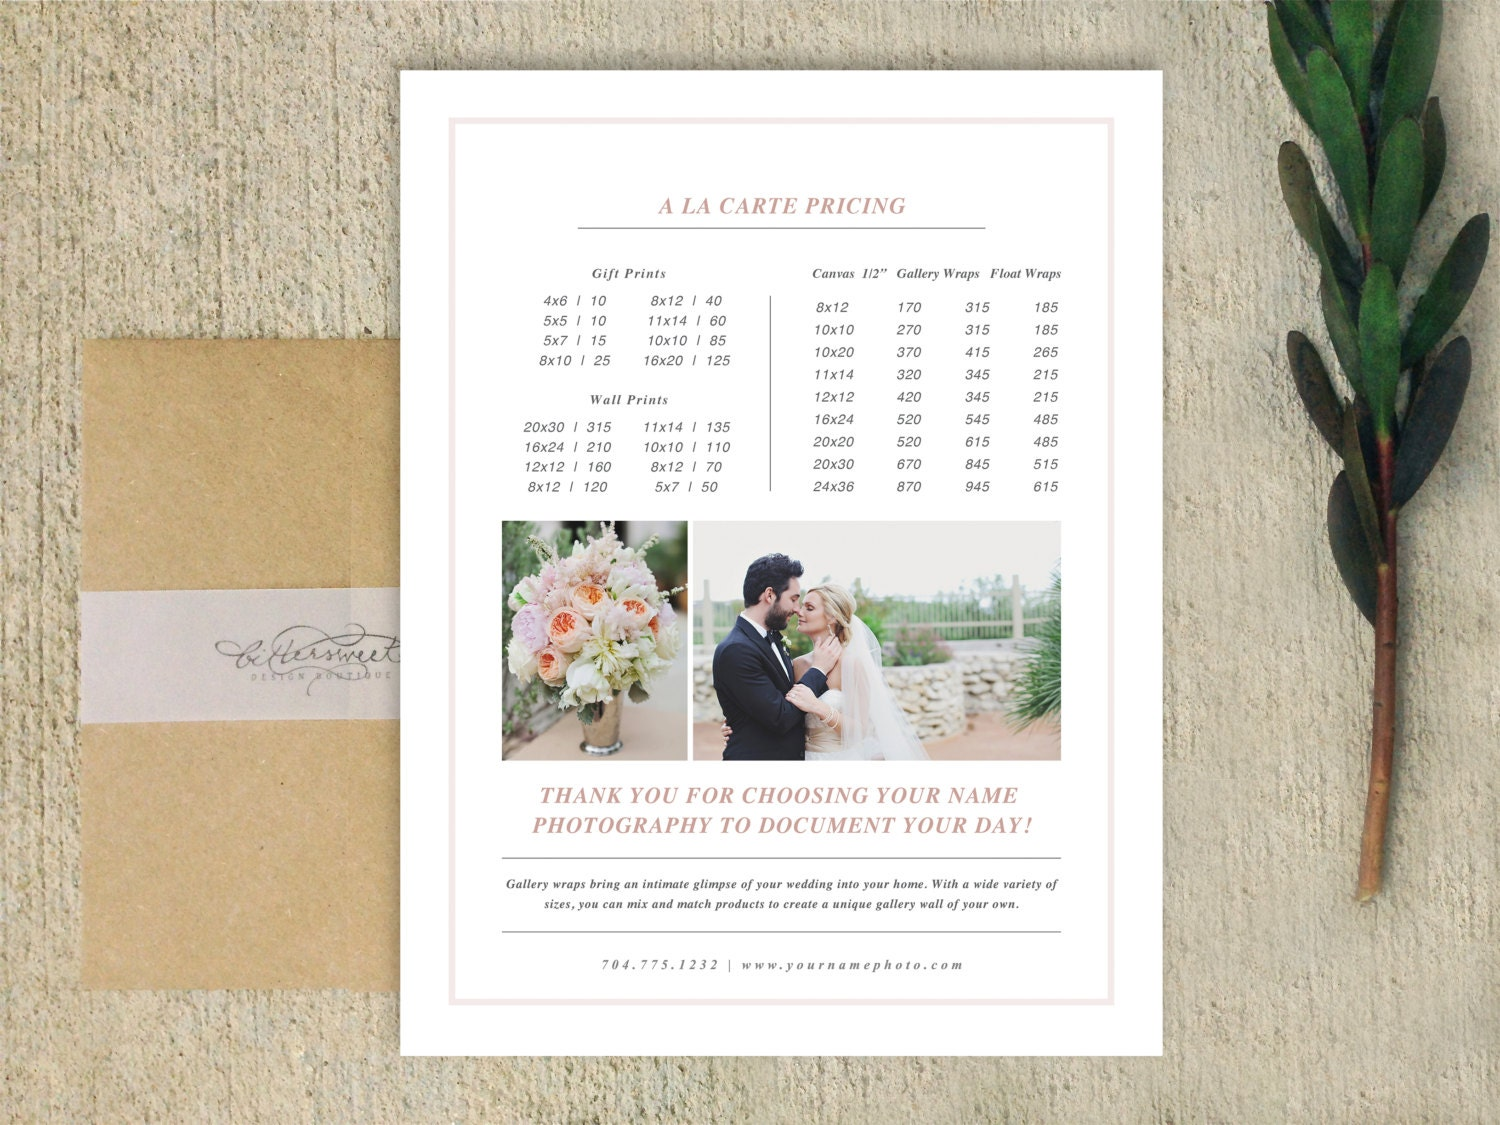 photography pricing template digital price list design for